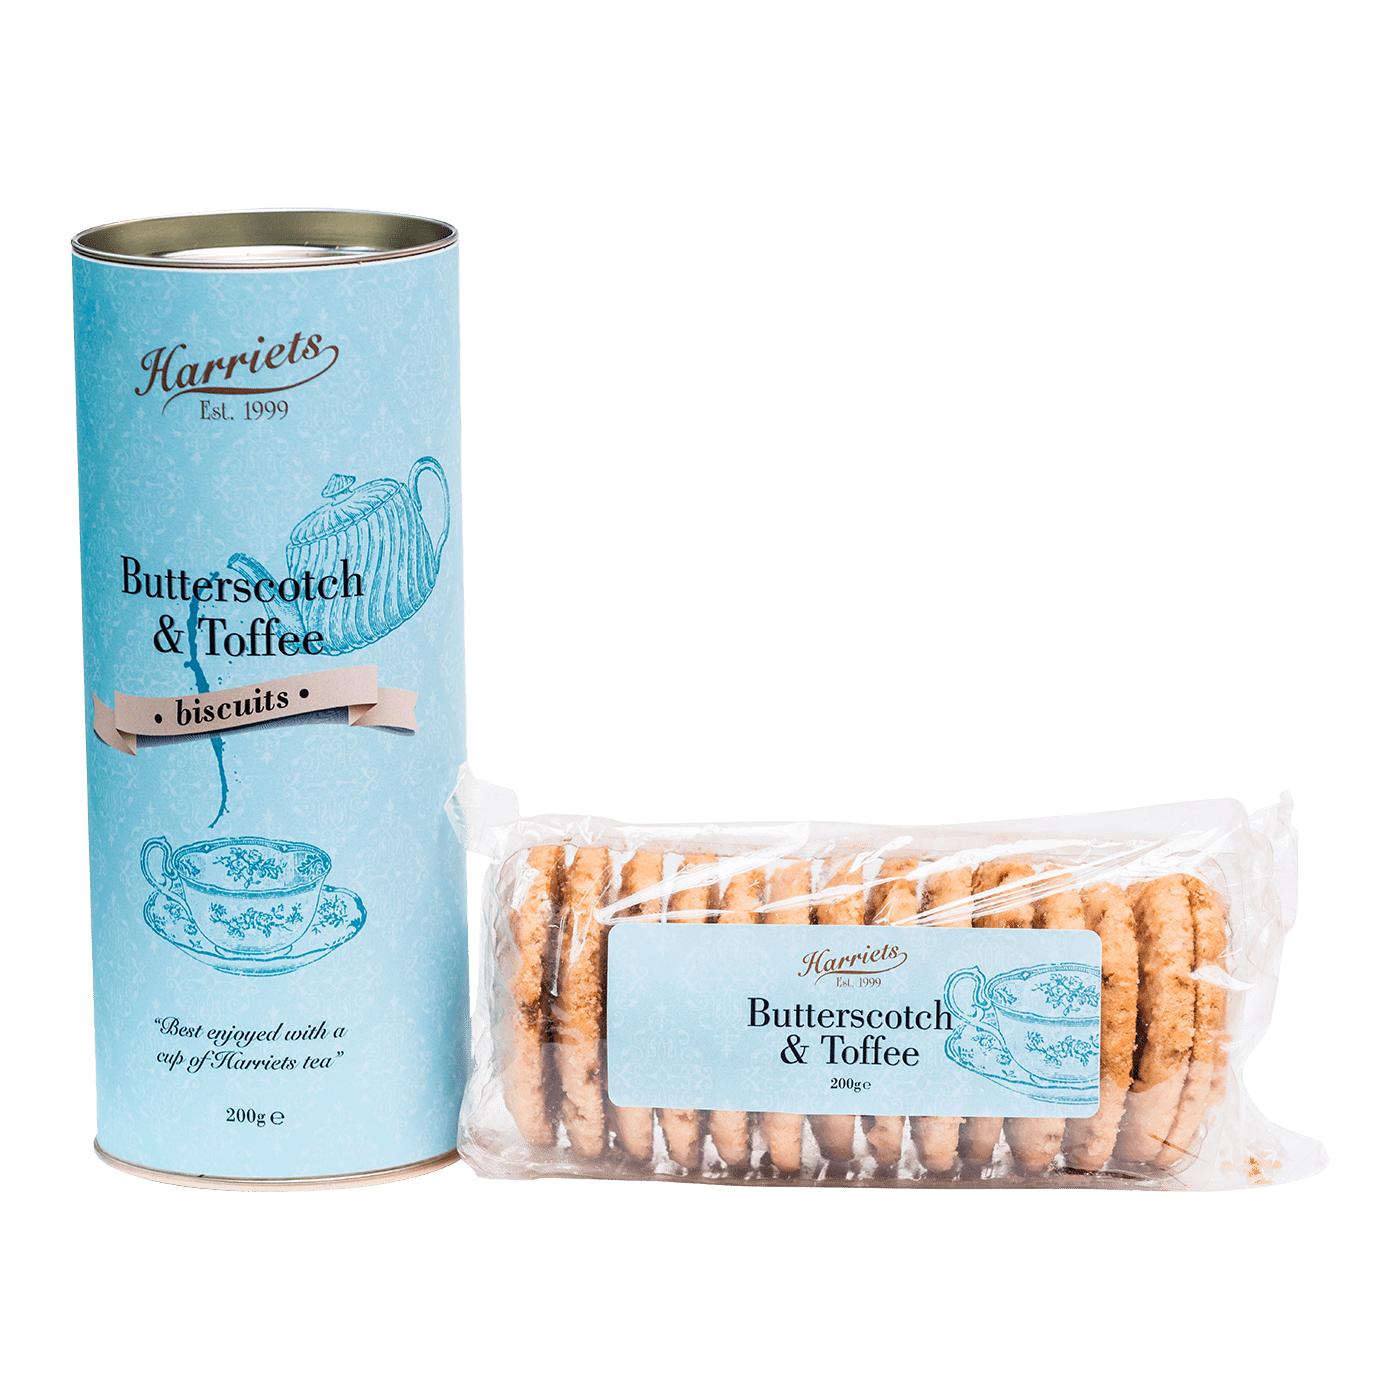 Butterscotch & Toffee Biscuits